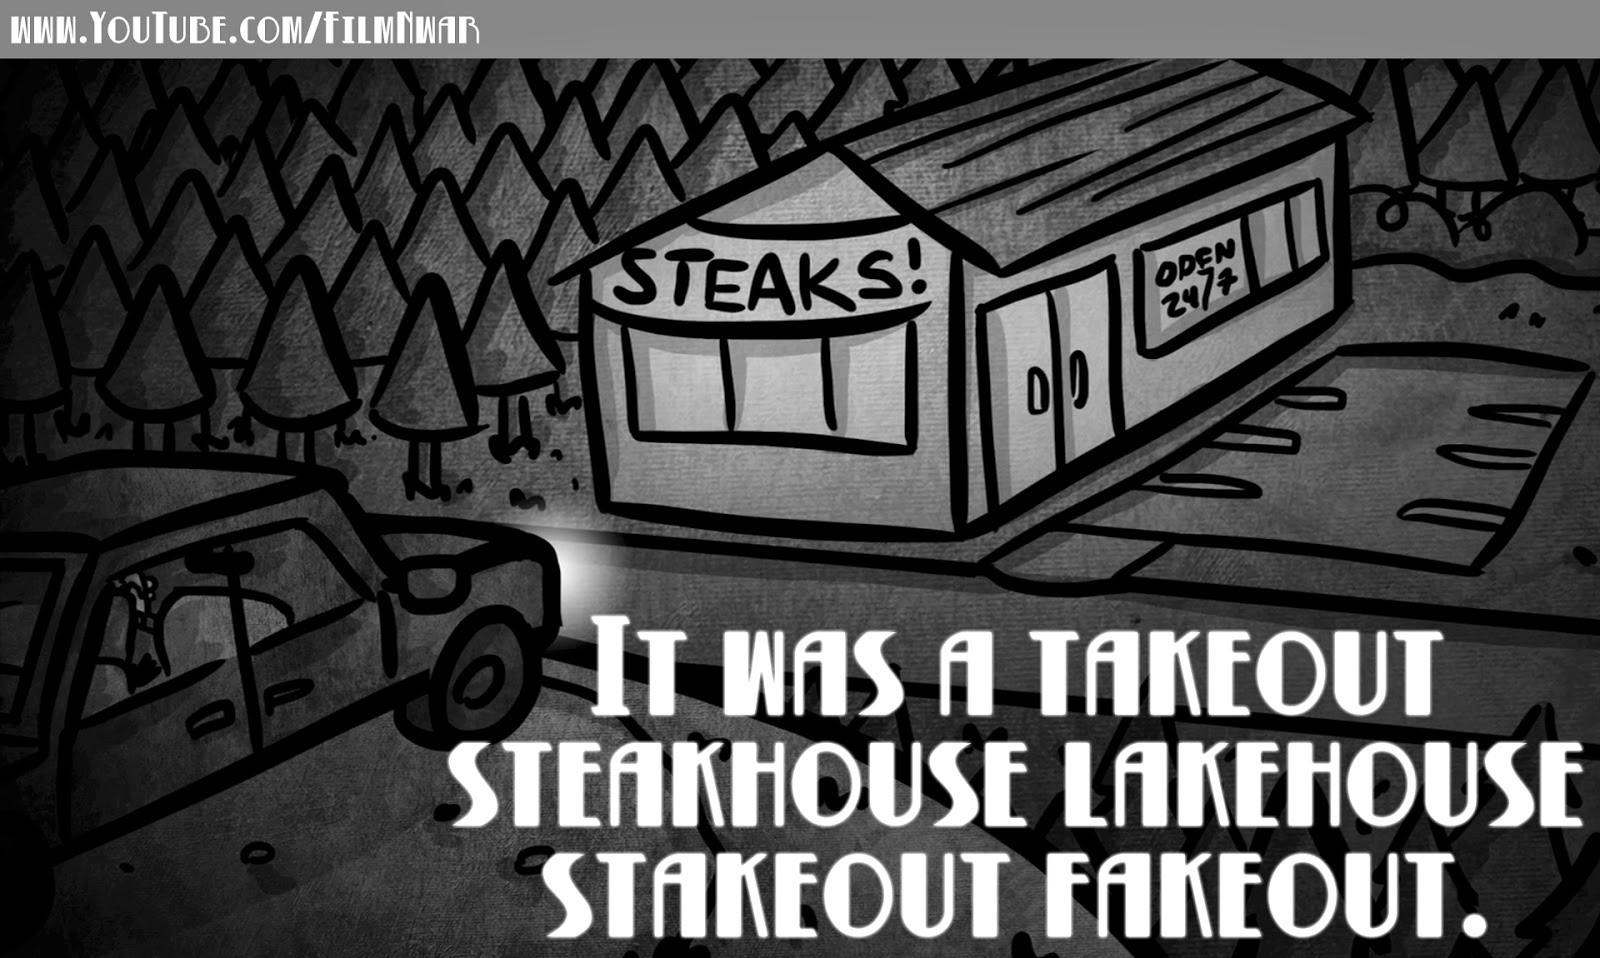 NWAR Detective - Steakhouse stakeout